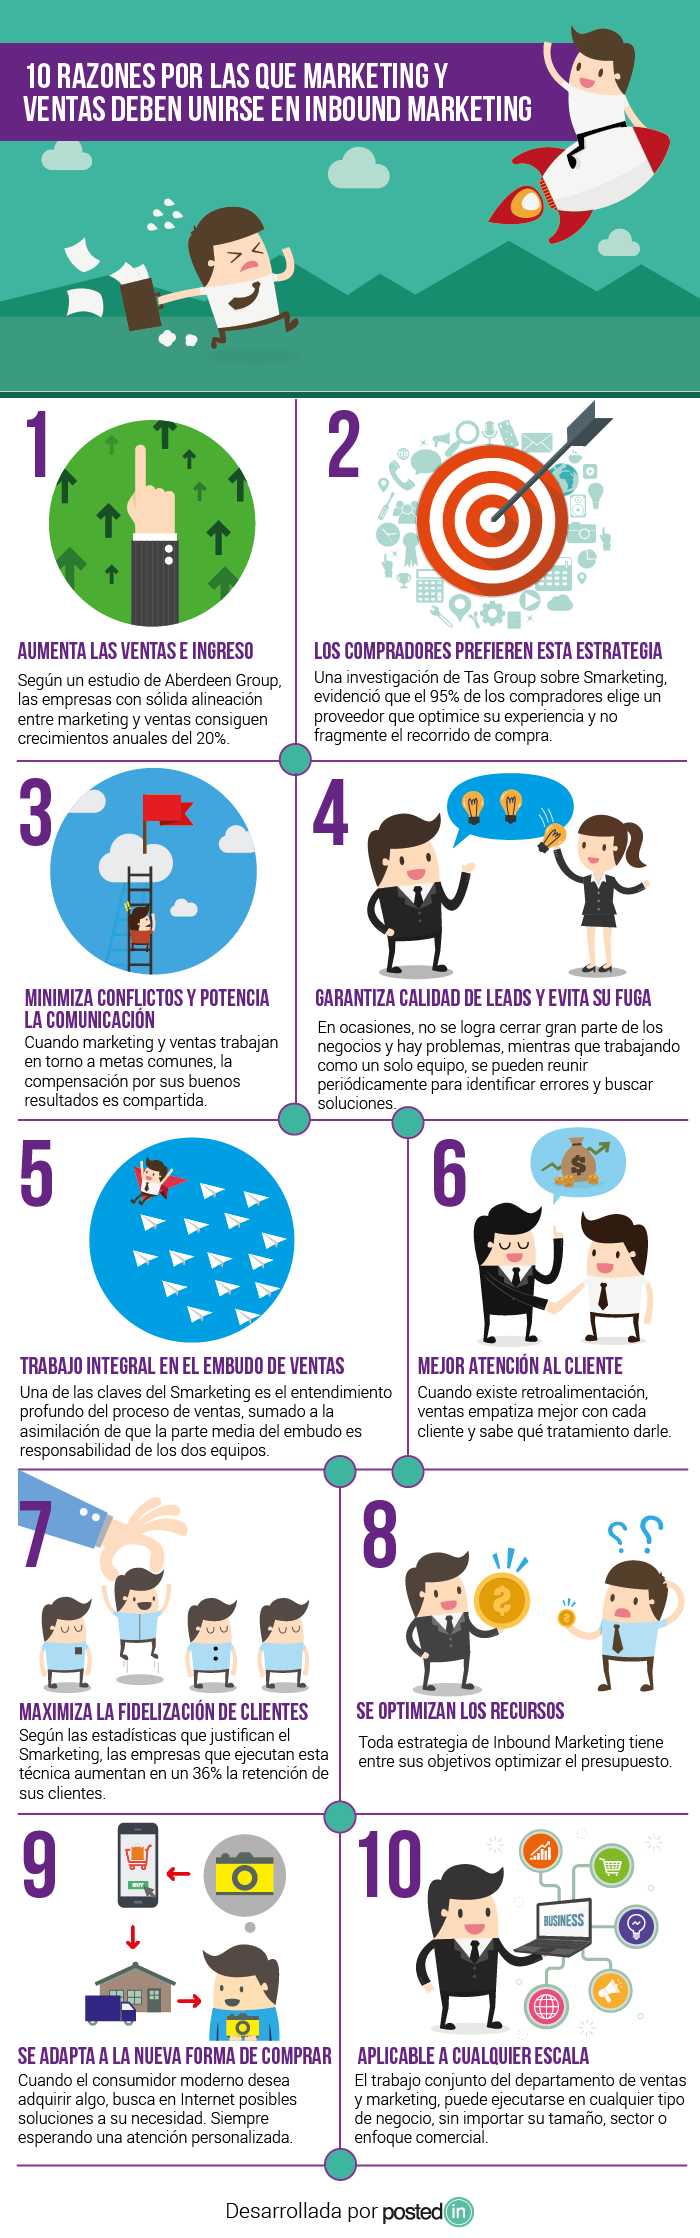 10 razones por las que Marketing y Ventas deben unirse en Inbound Marketing